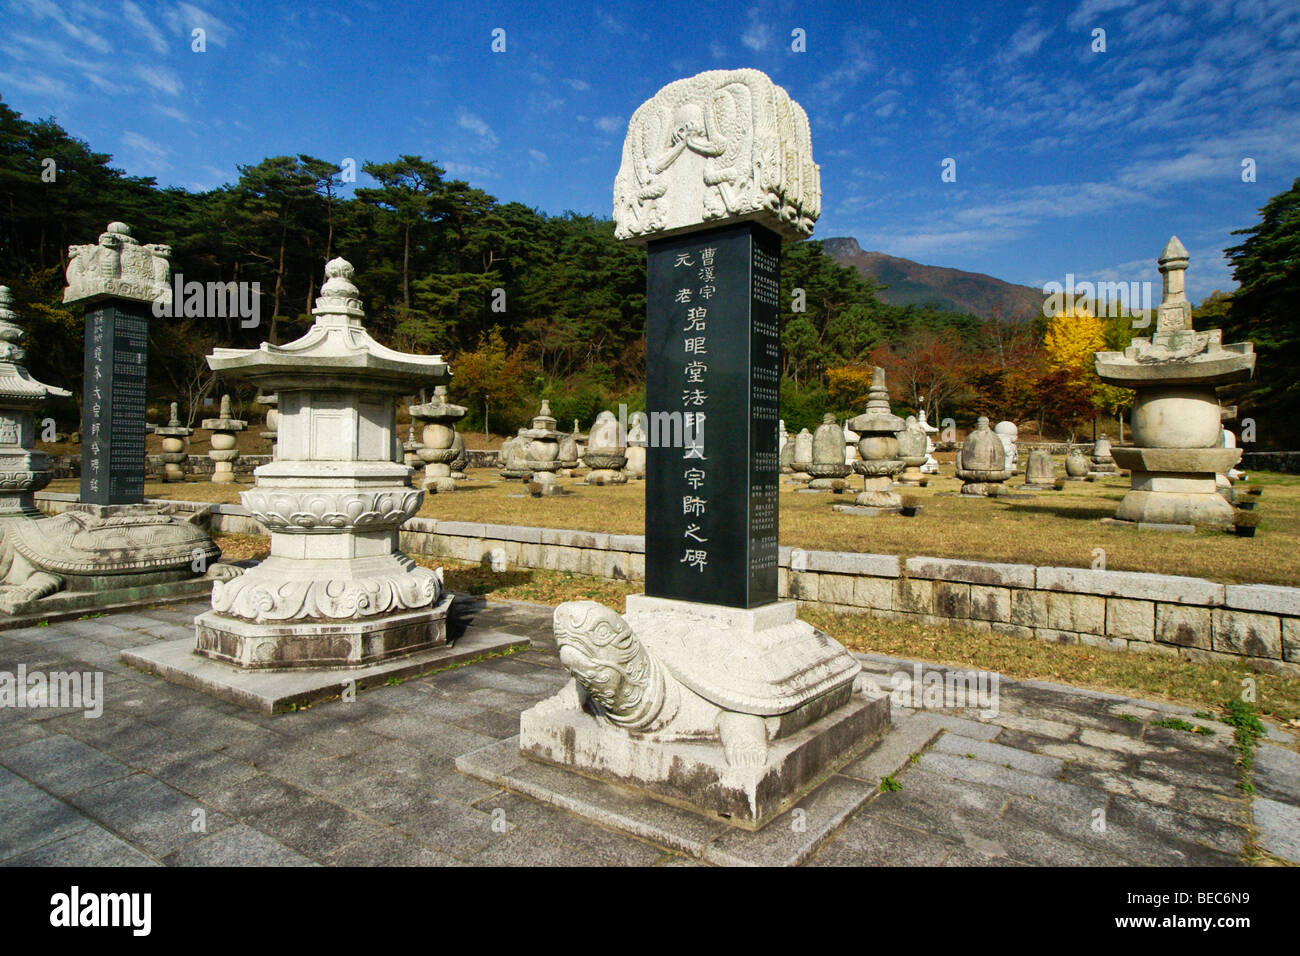 Memorials at Tongdosa Buddhist temple, South Korea Stock Photo